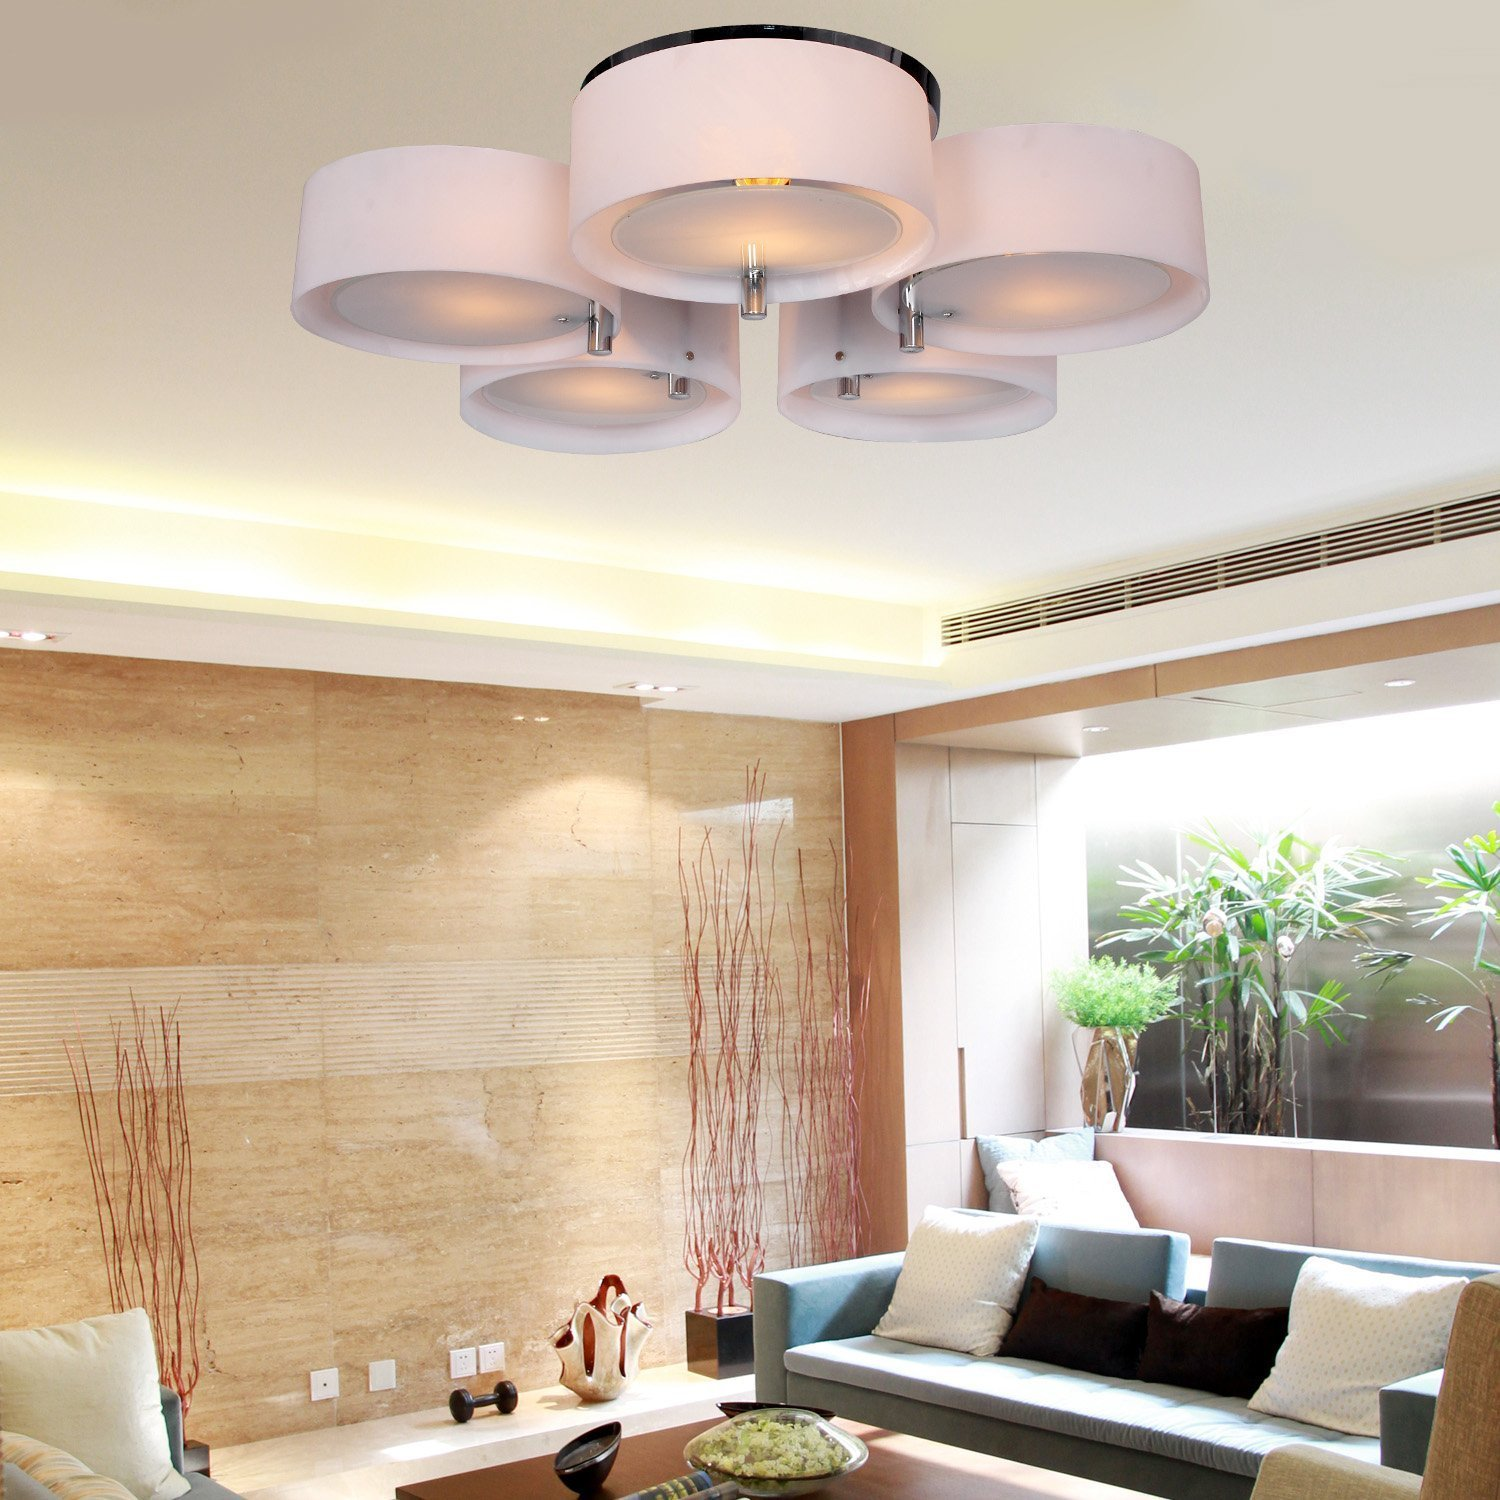 size room lighting living getting sitting lamps lights for ideas ceiling fittings of interior oom drawing full light cool